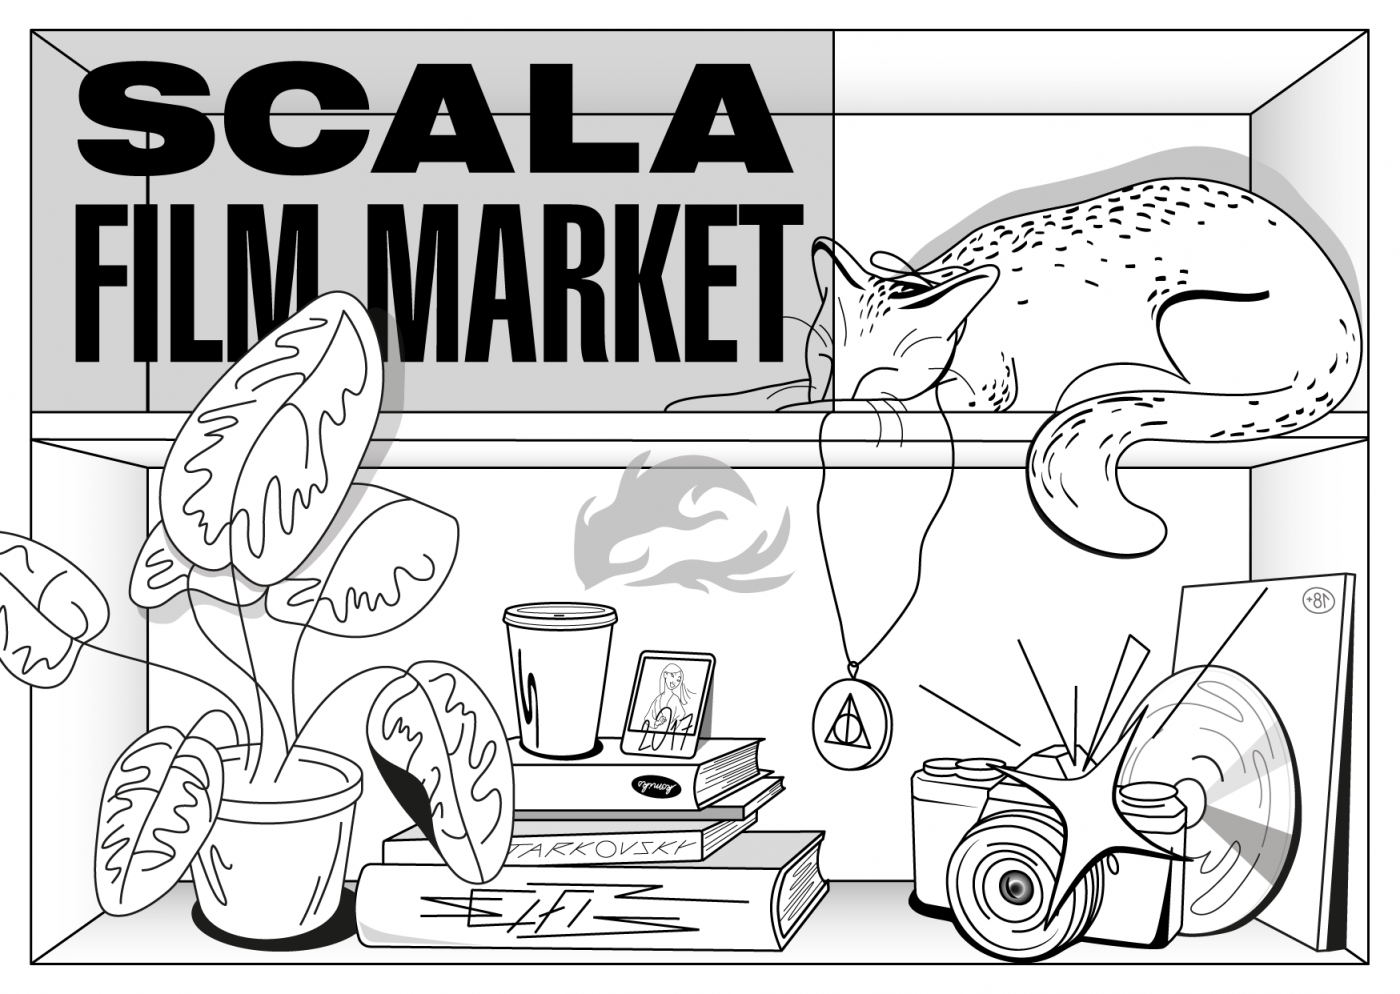 scala film market